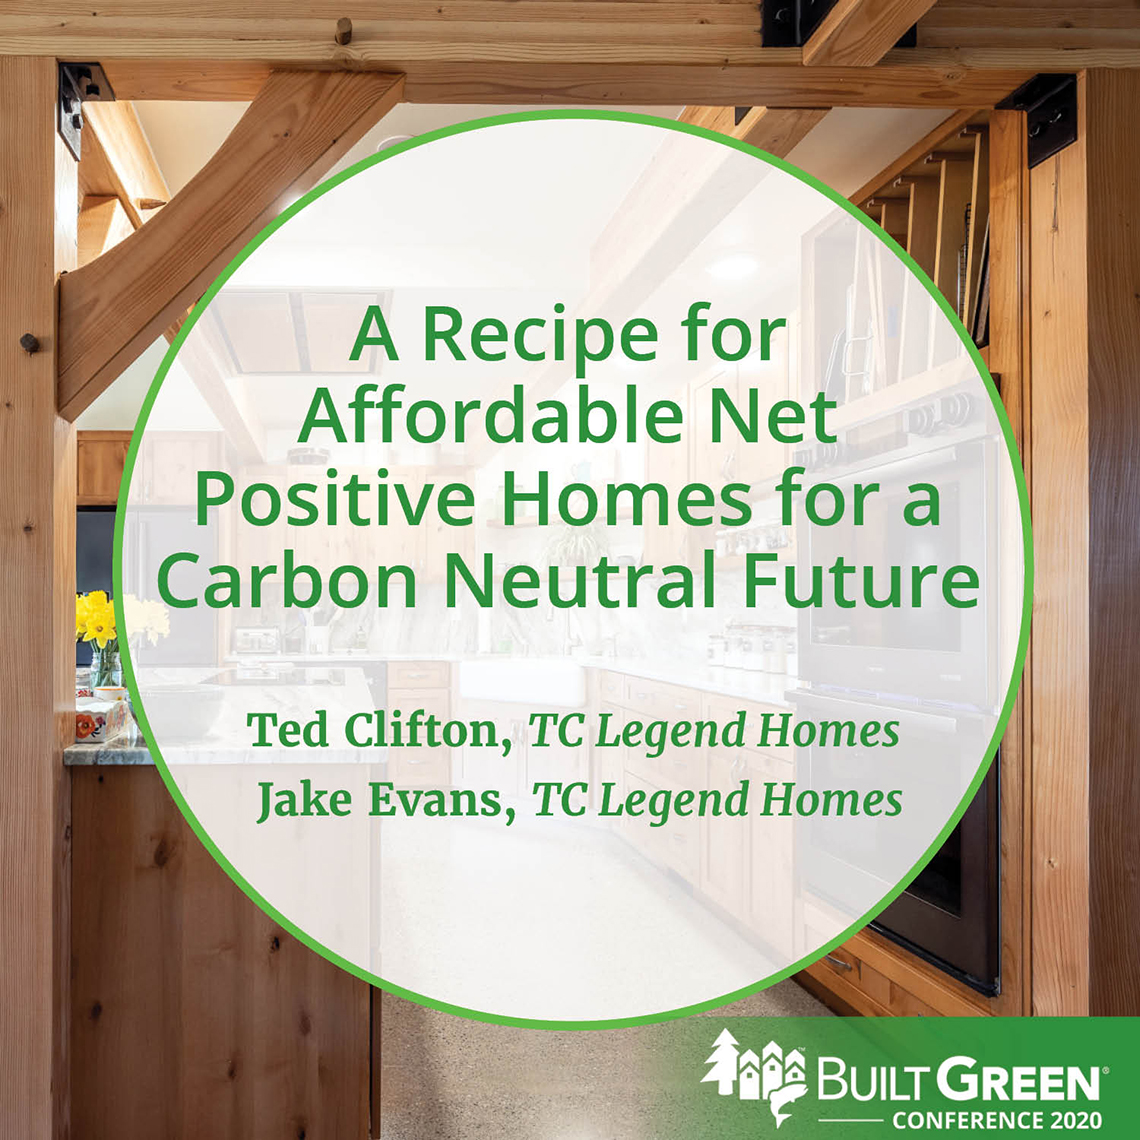 Built Green Conference Session: A Recipe for Affordable Net Positive Homes for a Carbon Neutral Future, featuring Ted Clifton and Jake Evans, TC Legend Homes